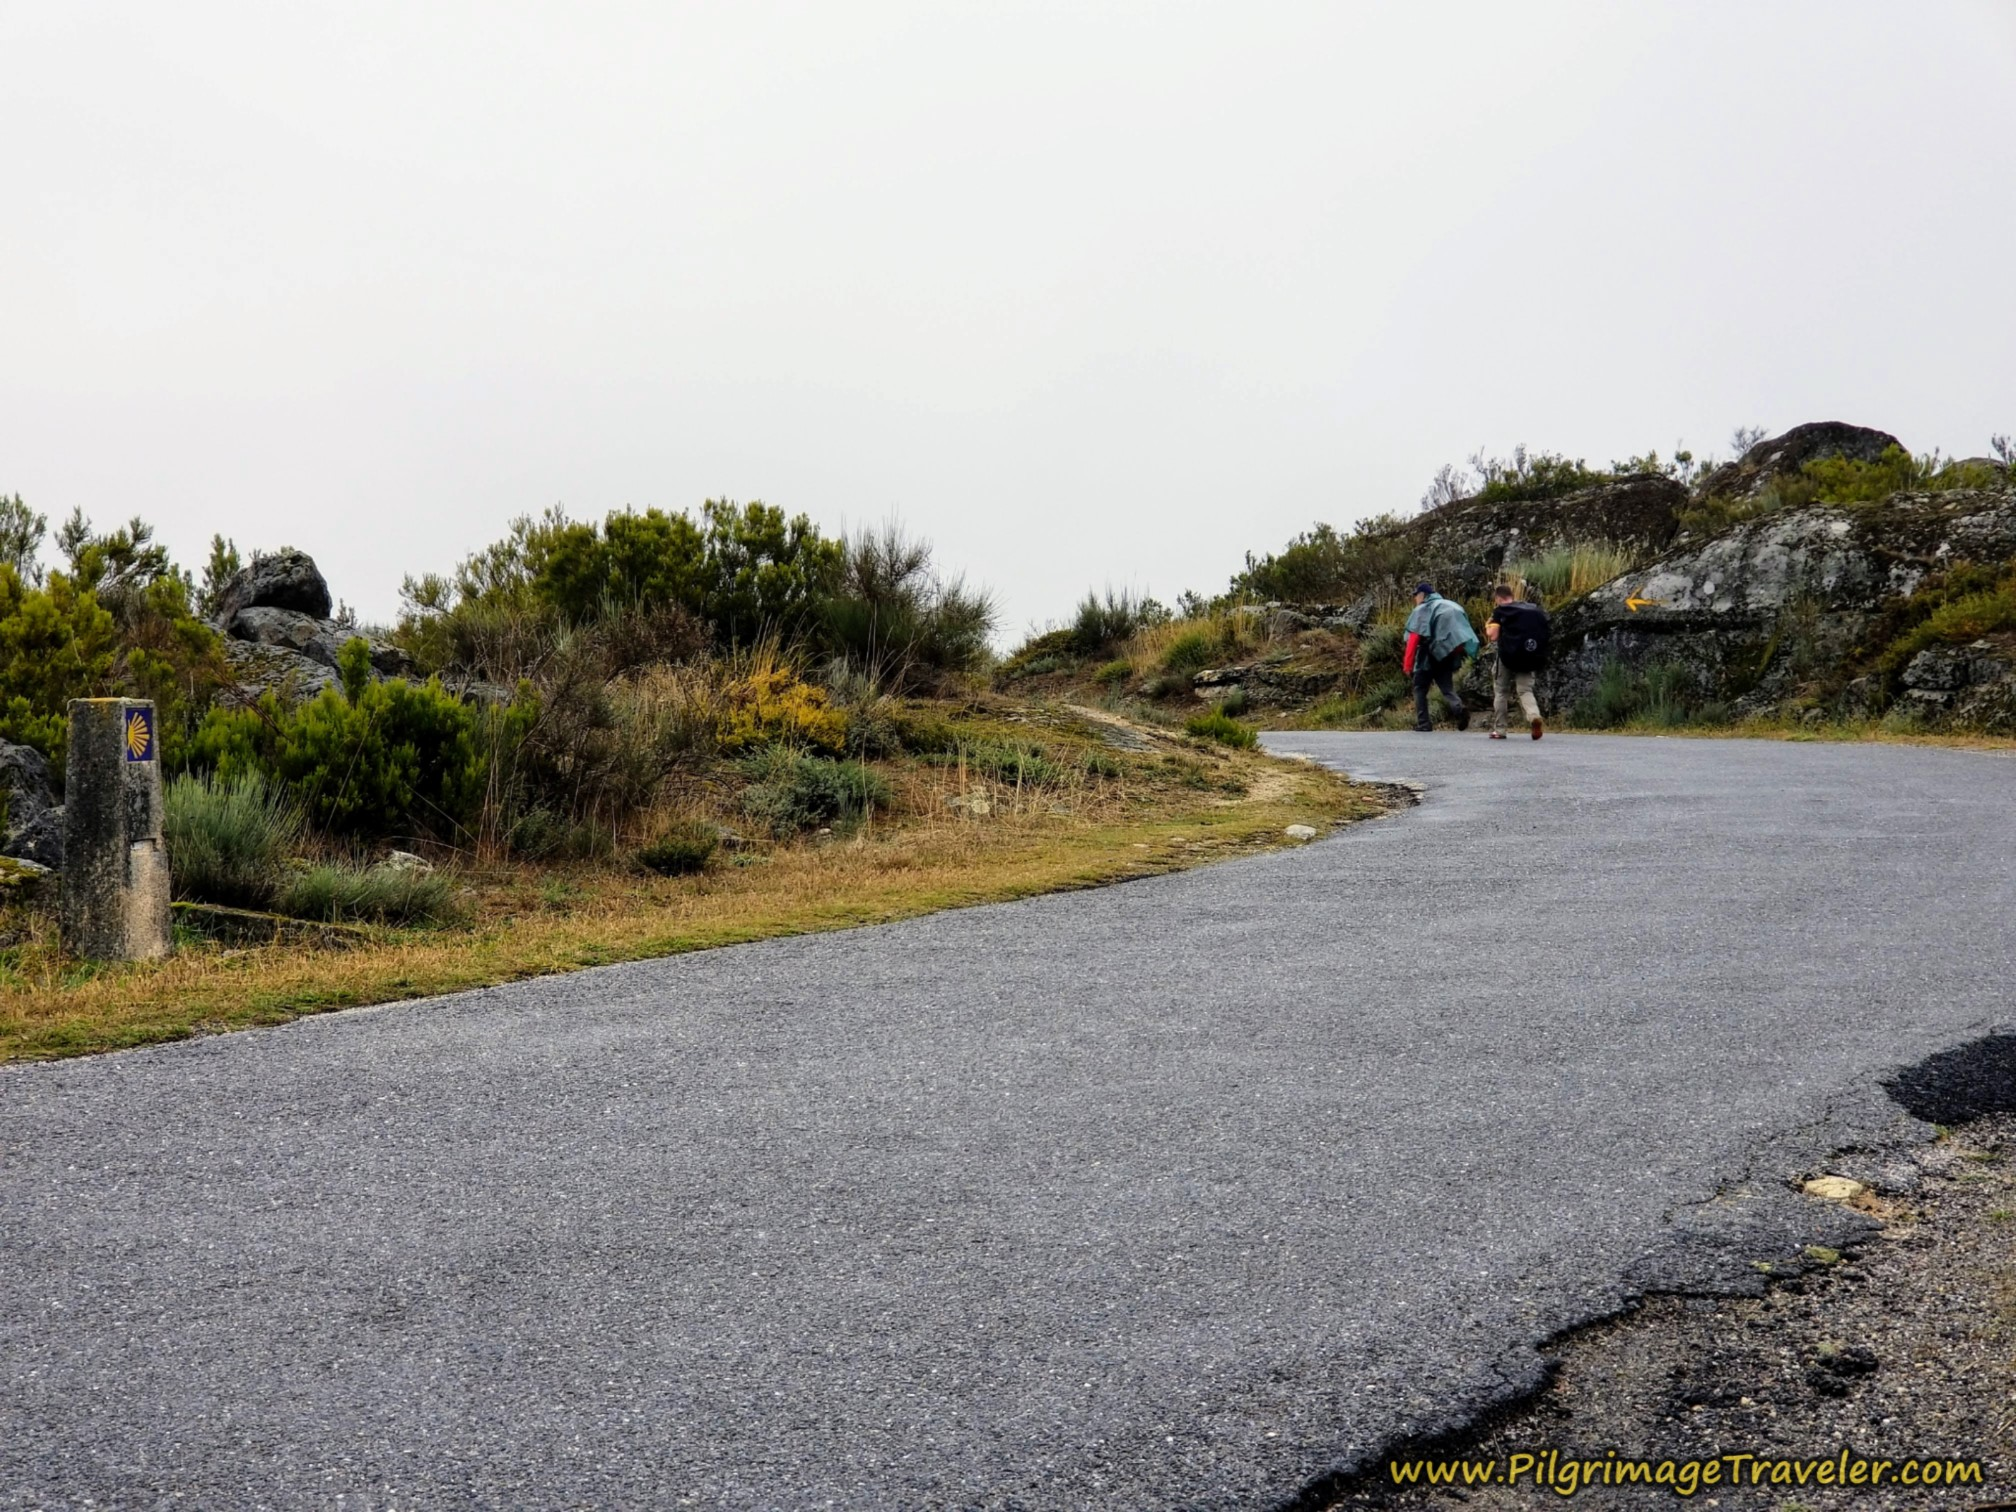 Join the Pavement of the OU-0953 on the Camino Sanabrés from Lubián to A Gudiña